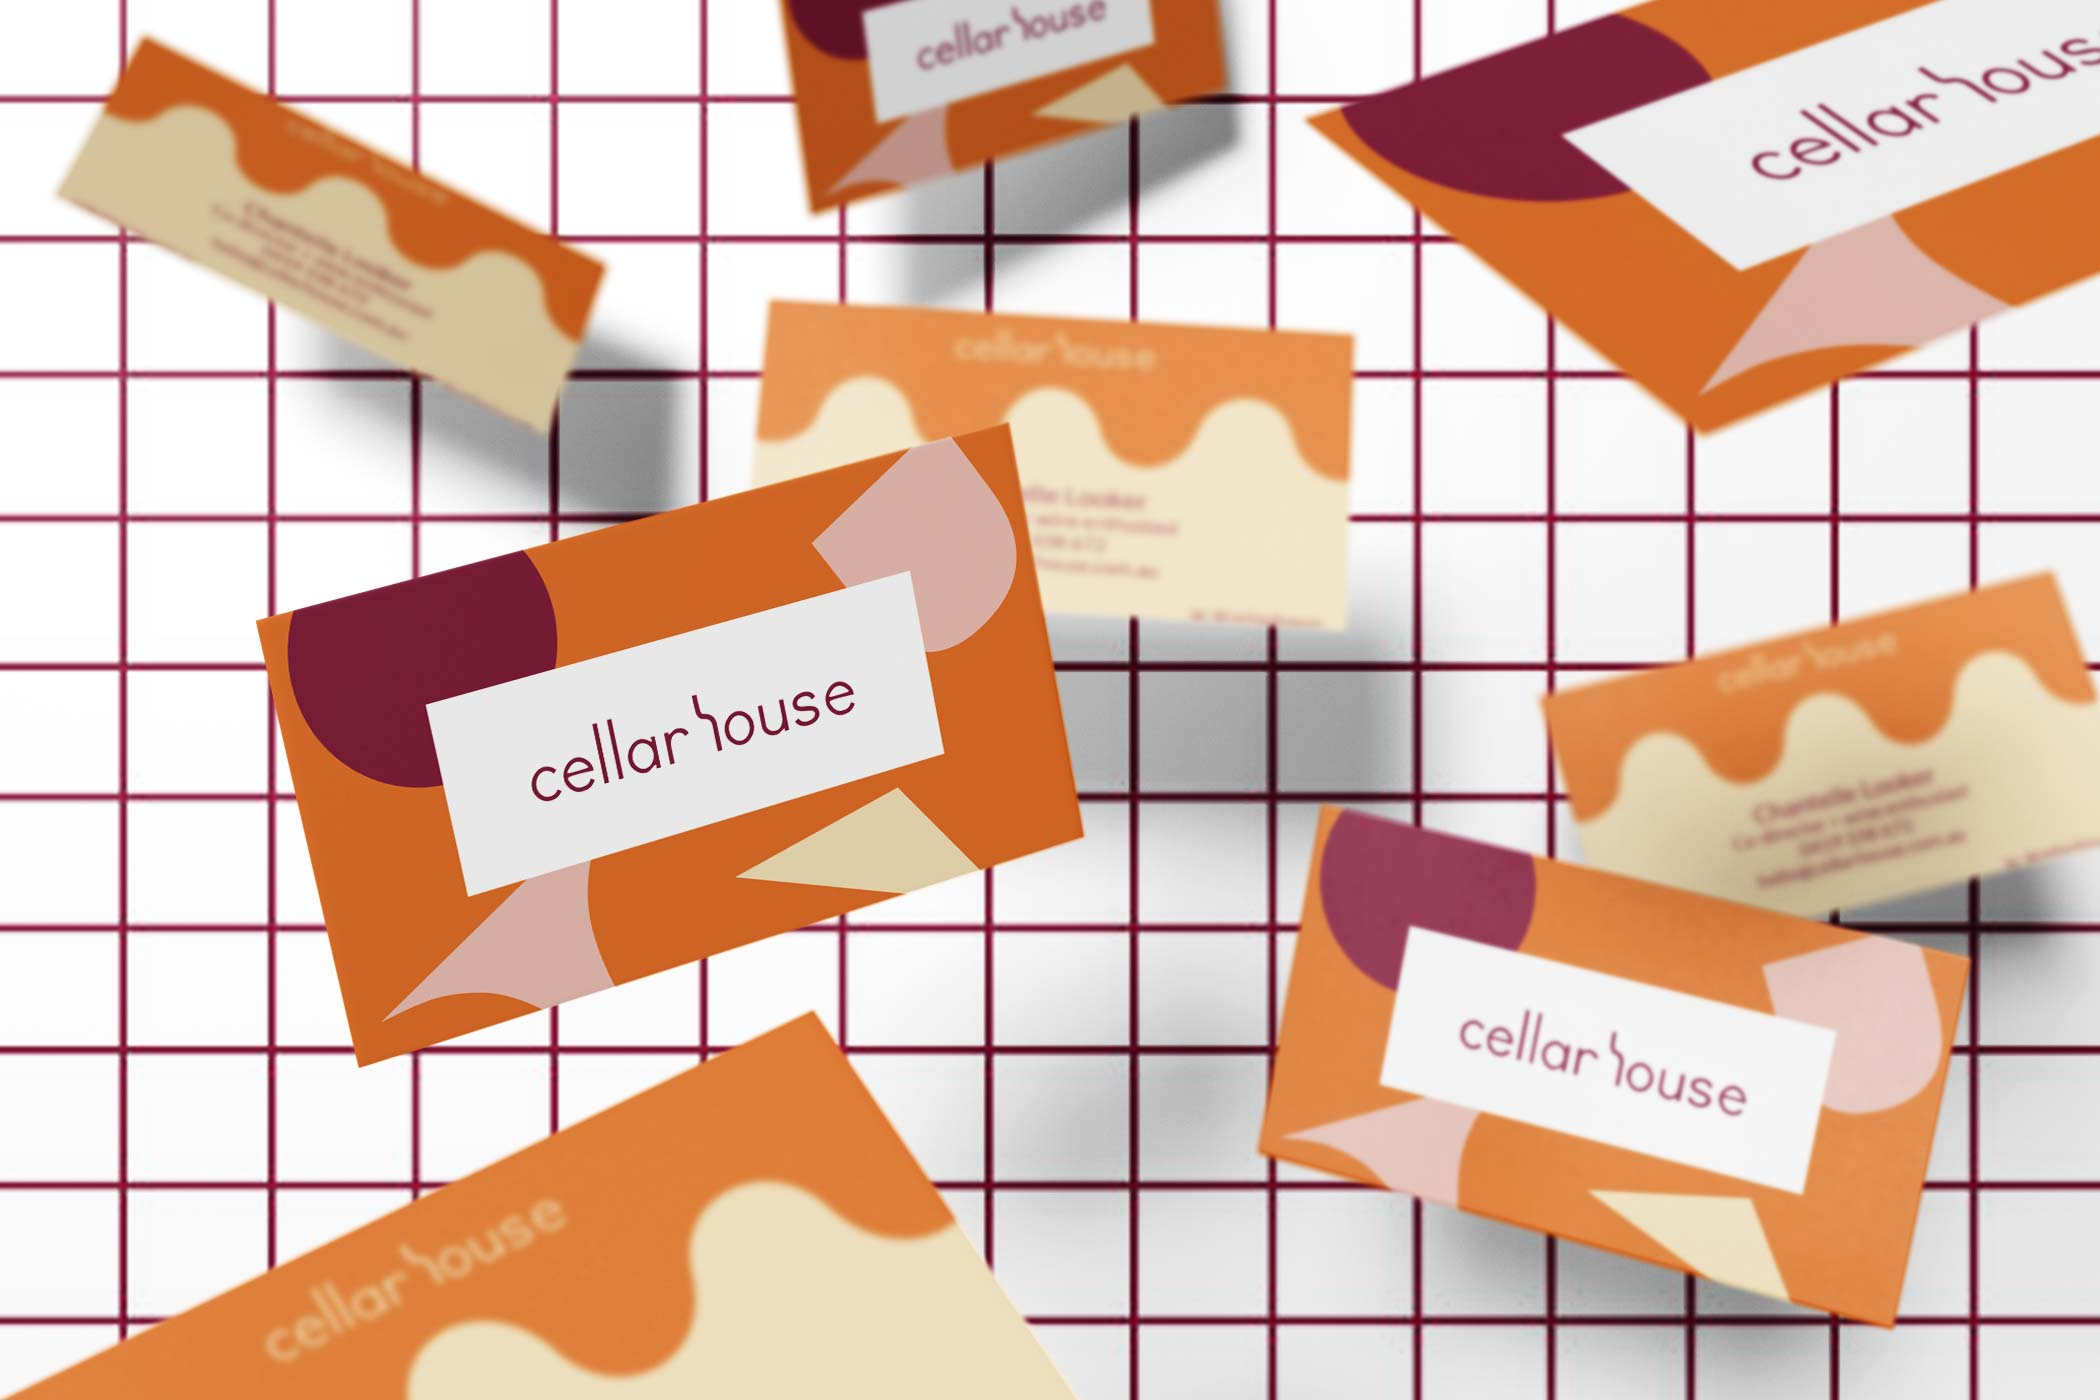 Floating business cards for Cellar House on check background